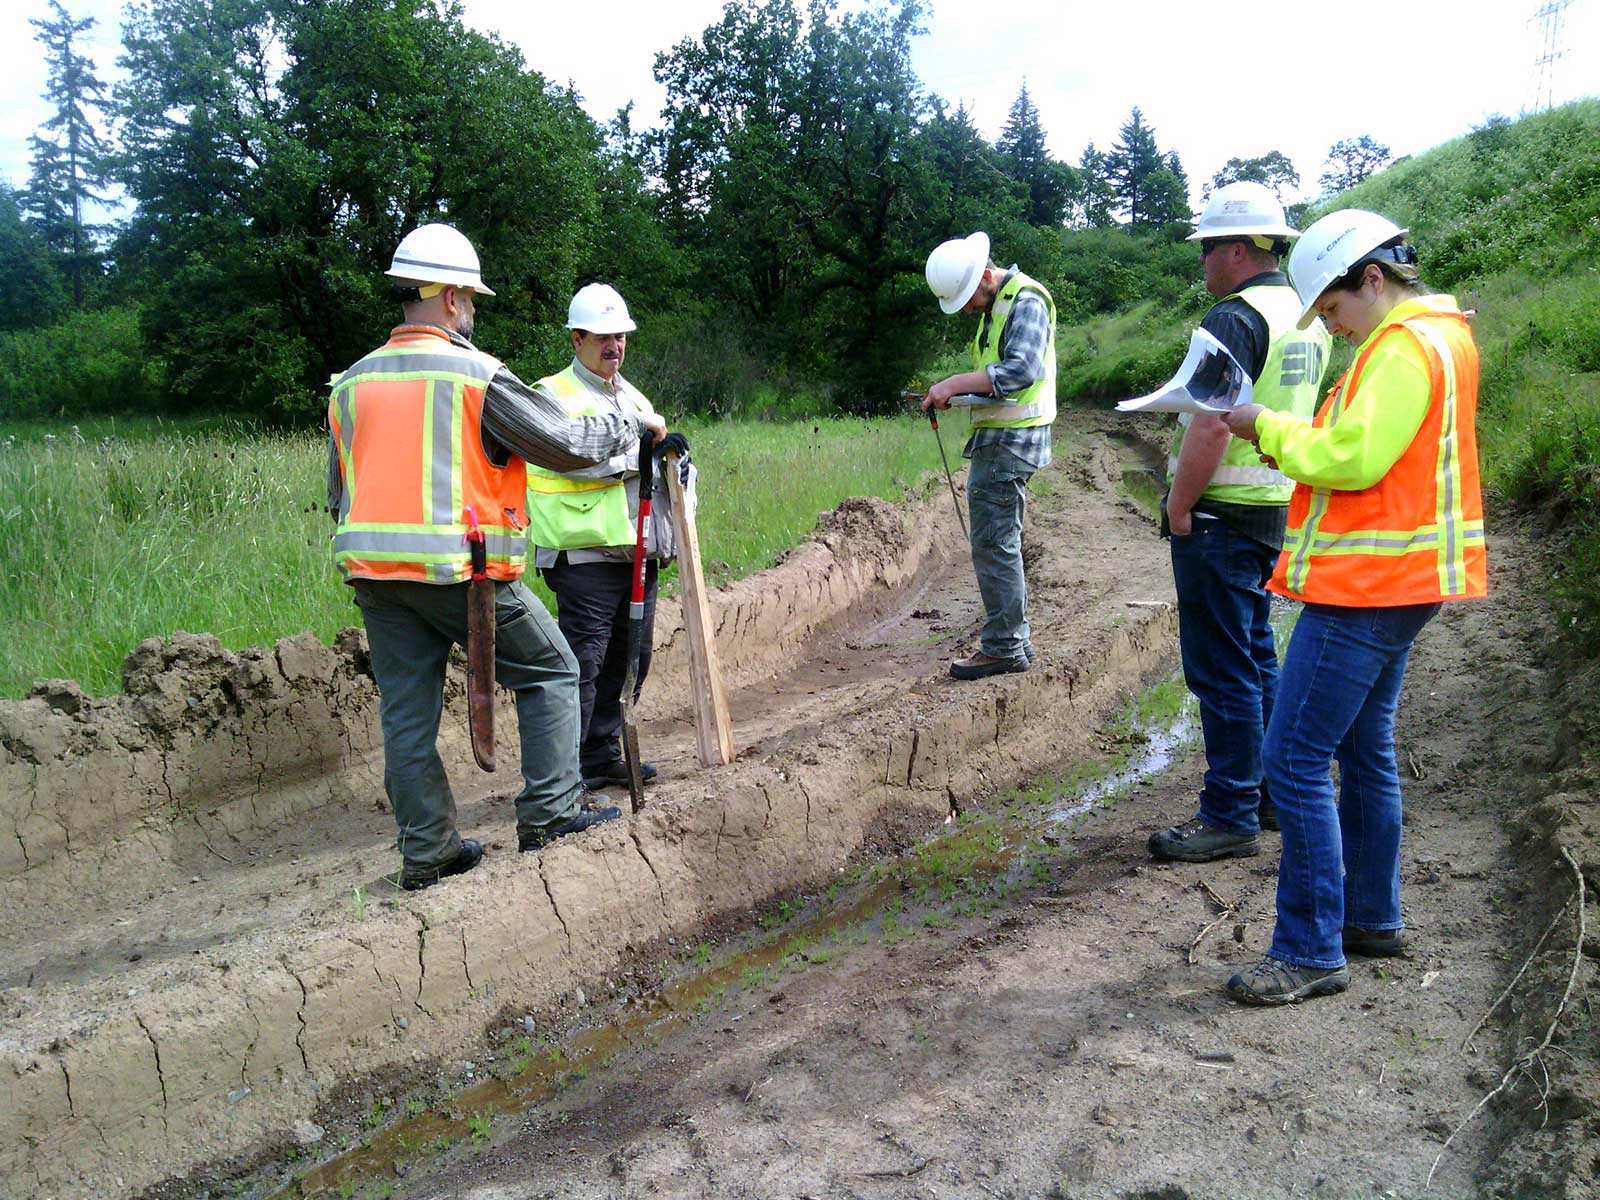 Willamette Water Supply Workers